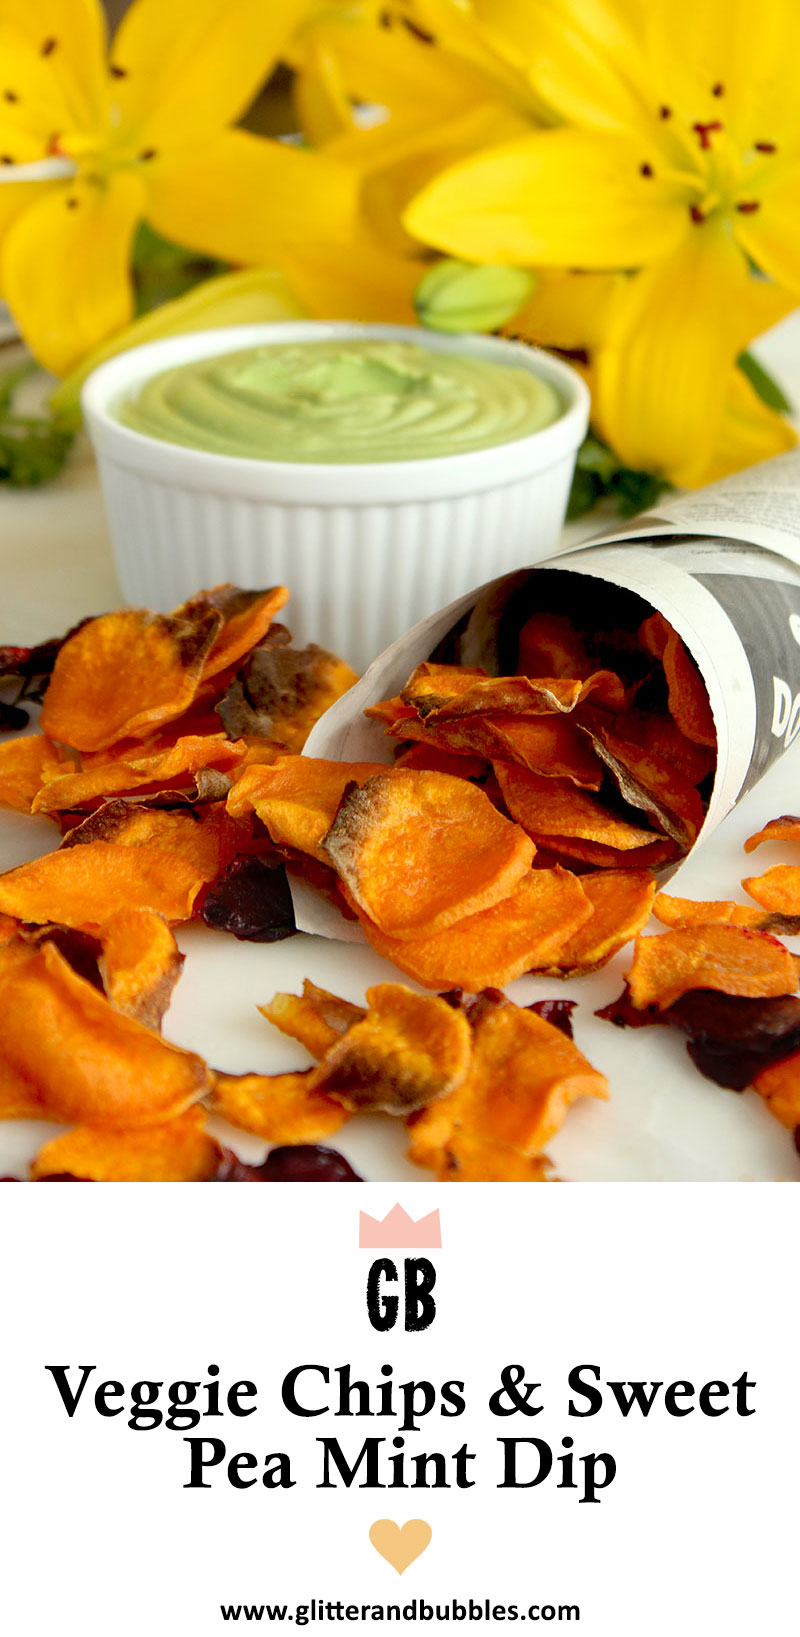 Homemade sweet potato chips are shown next to sweet pea mint dip.